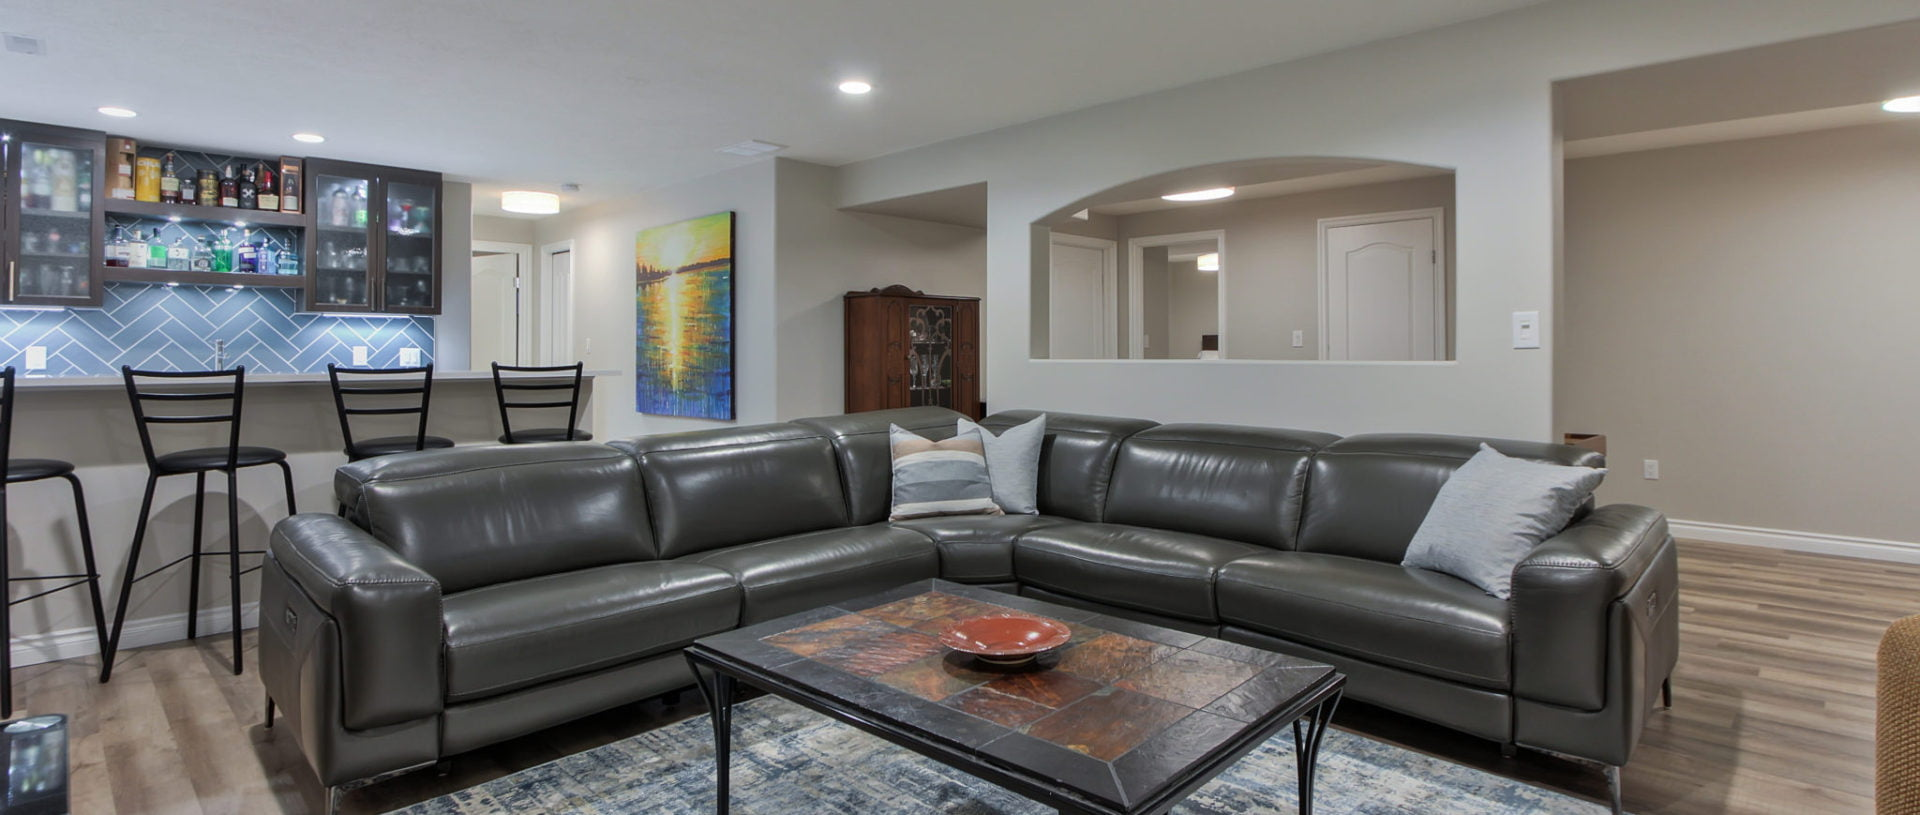 Basement rental suite in Edmonton with wet bar and custom features